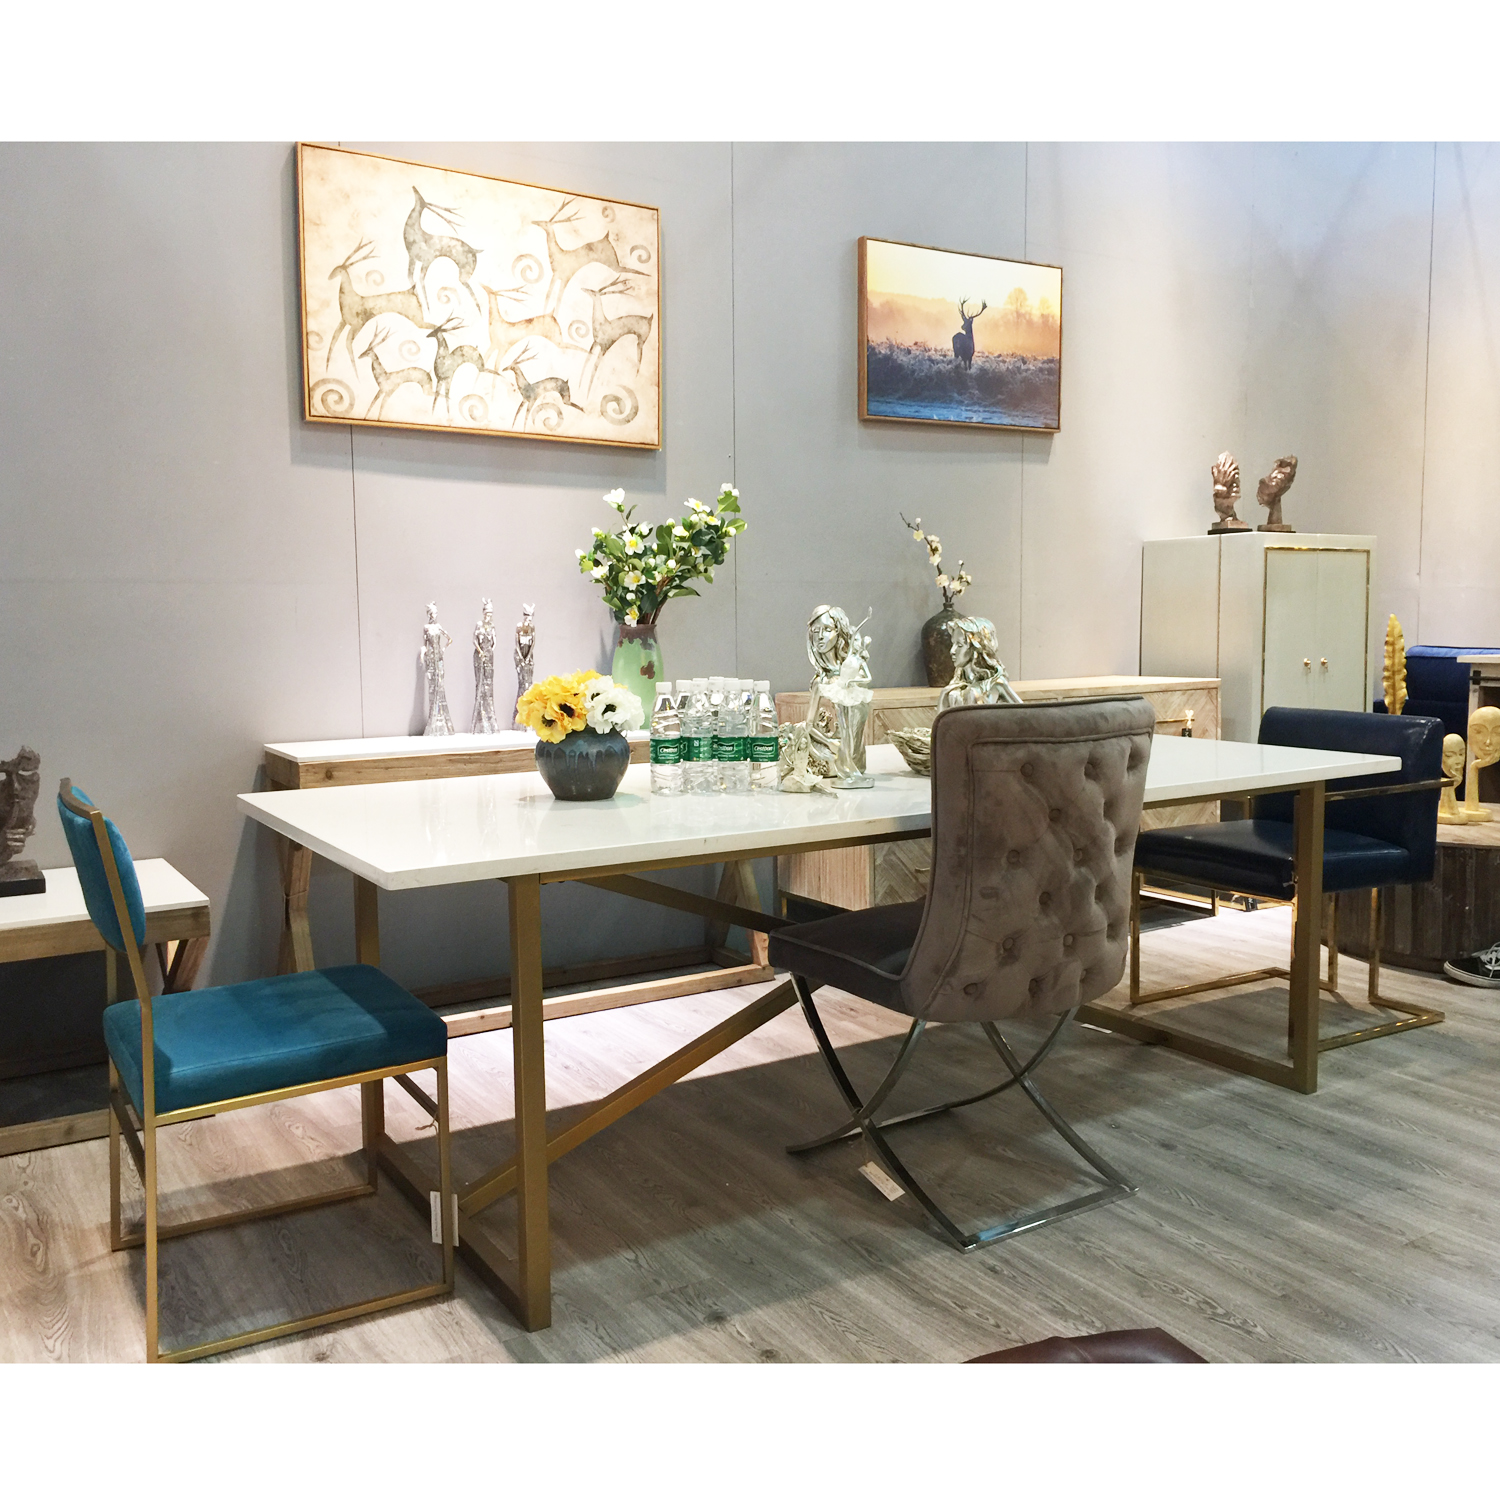 Modern Trestle White Marble Top And Gold Stainless Steel Frame Cross Legs Dining Table Buy Marble Top Stainless Steel Frame Dining Table Marble Dining Table Modern Dining Table Product On Alibaba Com